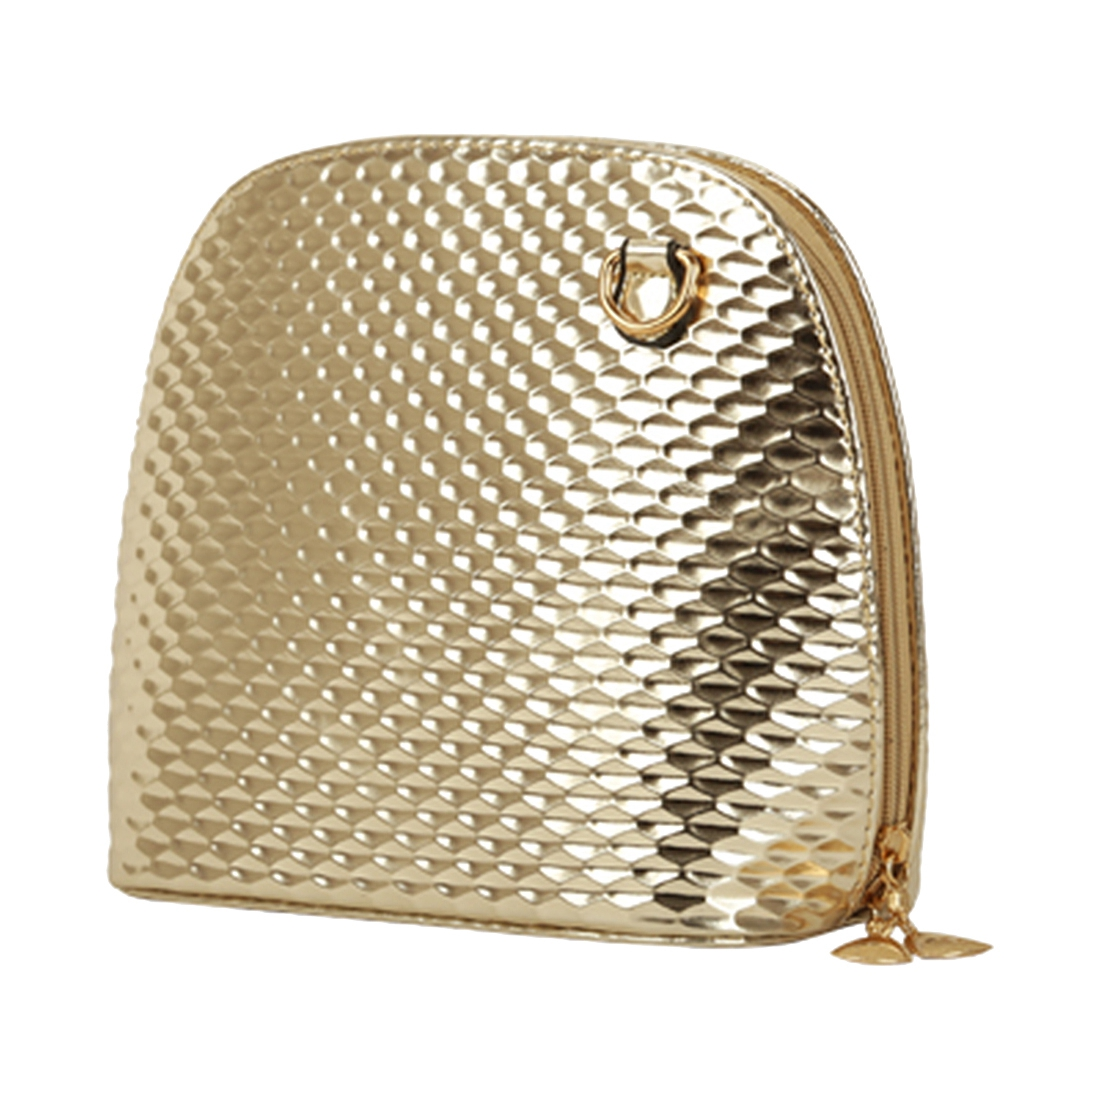 casual criss cross small shell handbag women evening clutch ladies party purse shoulder crossbody bags Gold new casual small patchwork pillow handbags hot sale women evening clutch ladies party purse famous brand shoulder crossbody bags